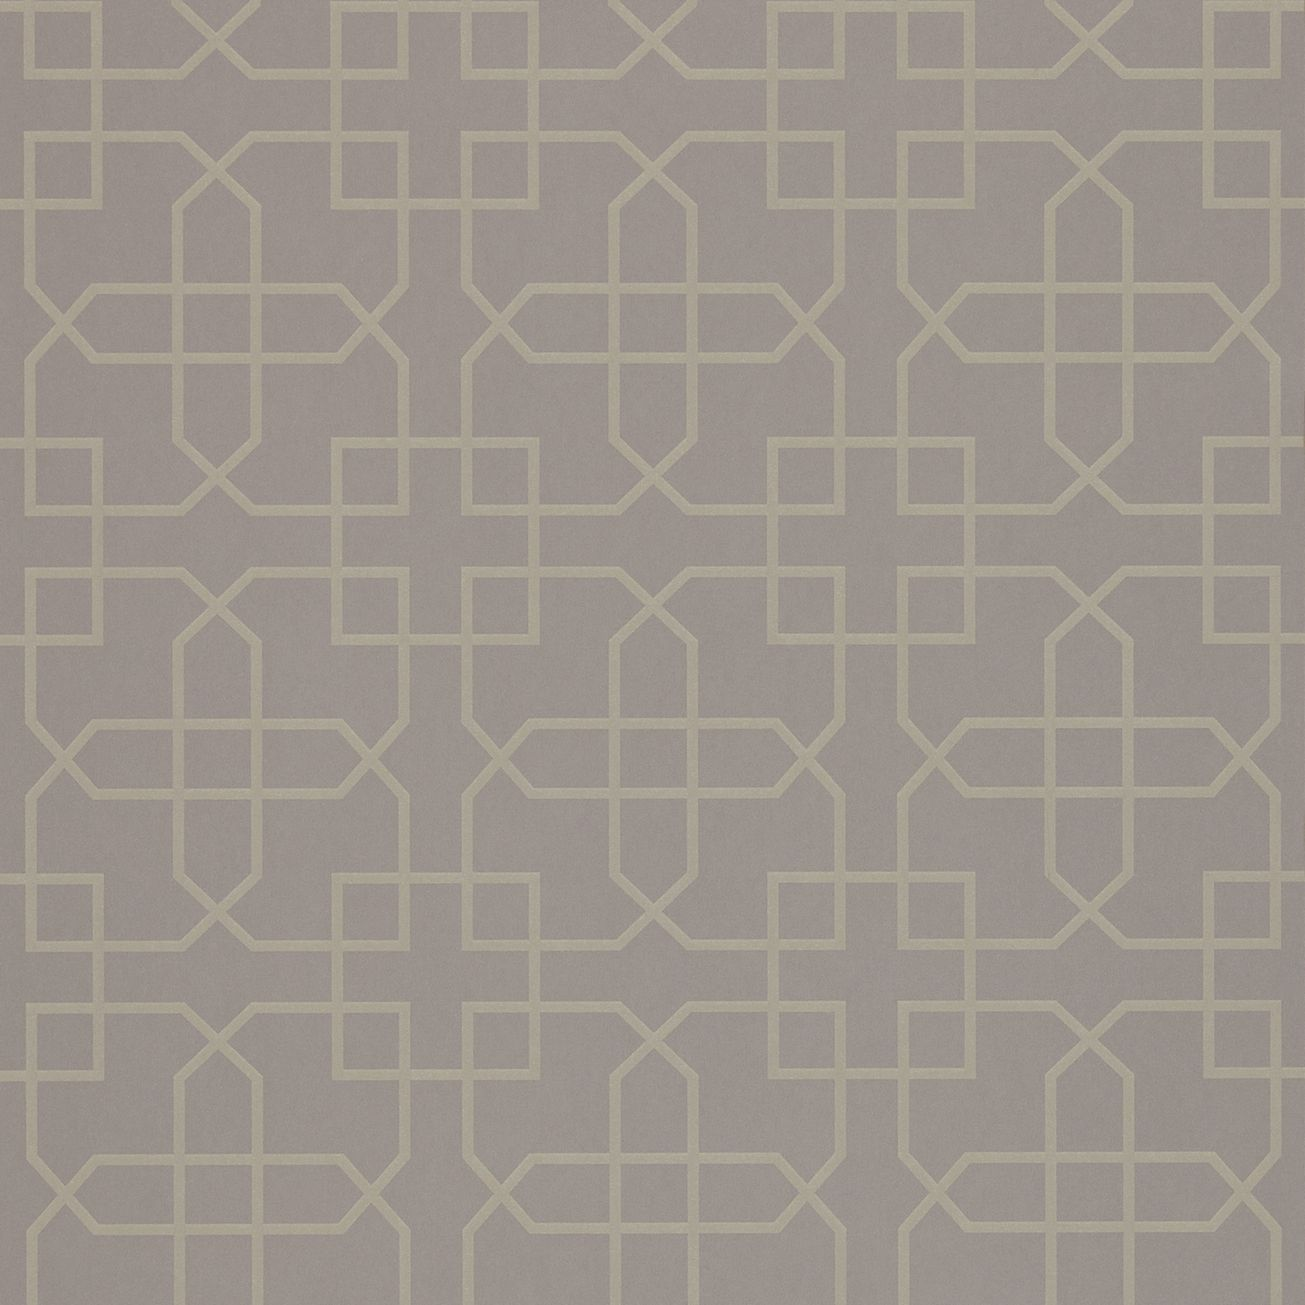 Siam Trellis Wallpaper Option 10 Wallpaper Collection Sanderson 1305x1305